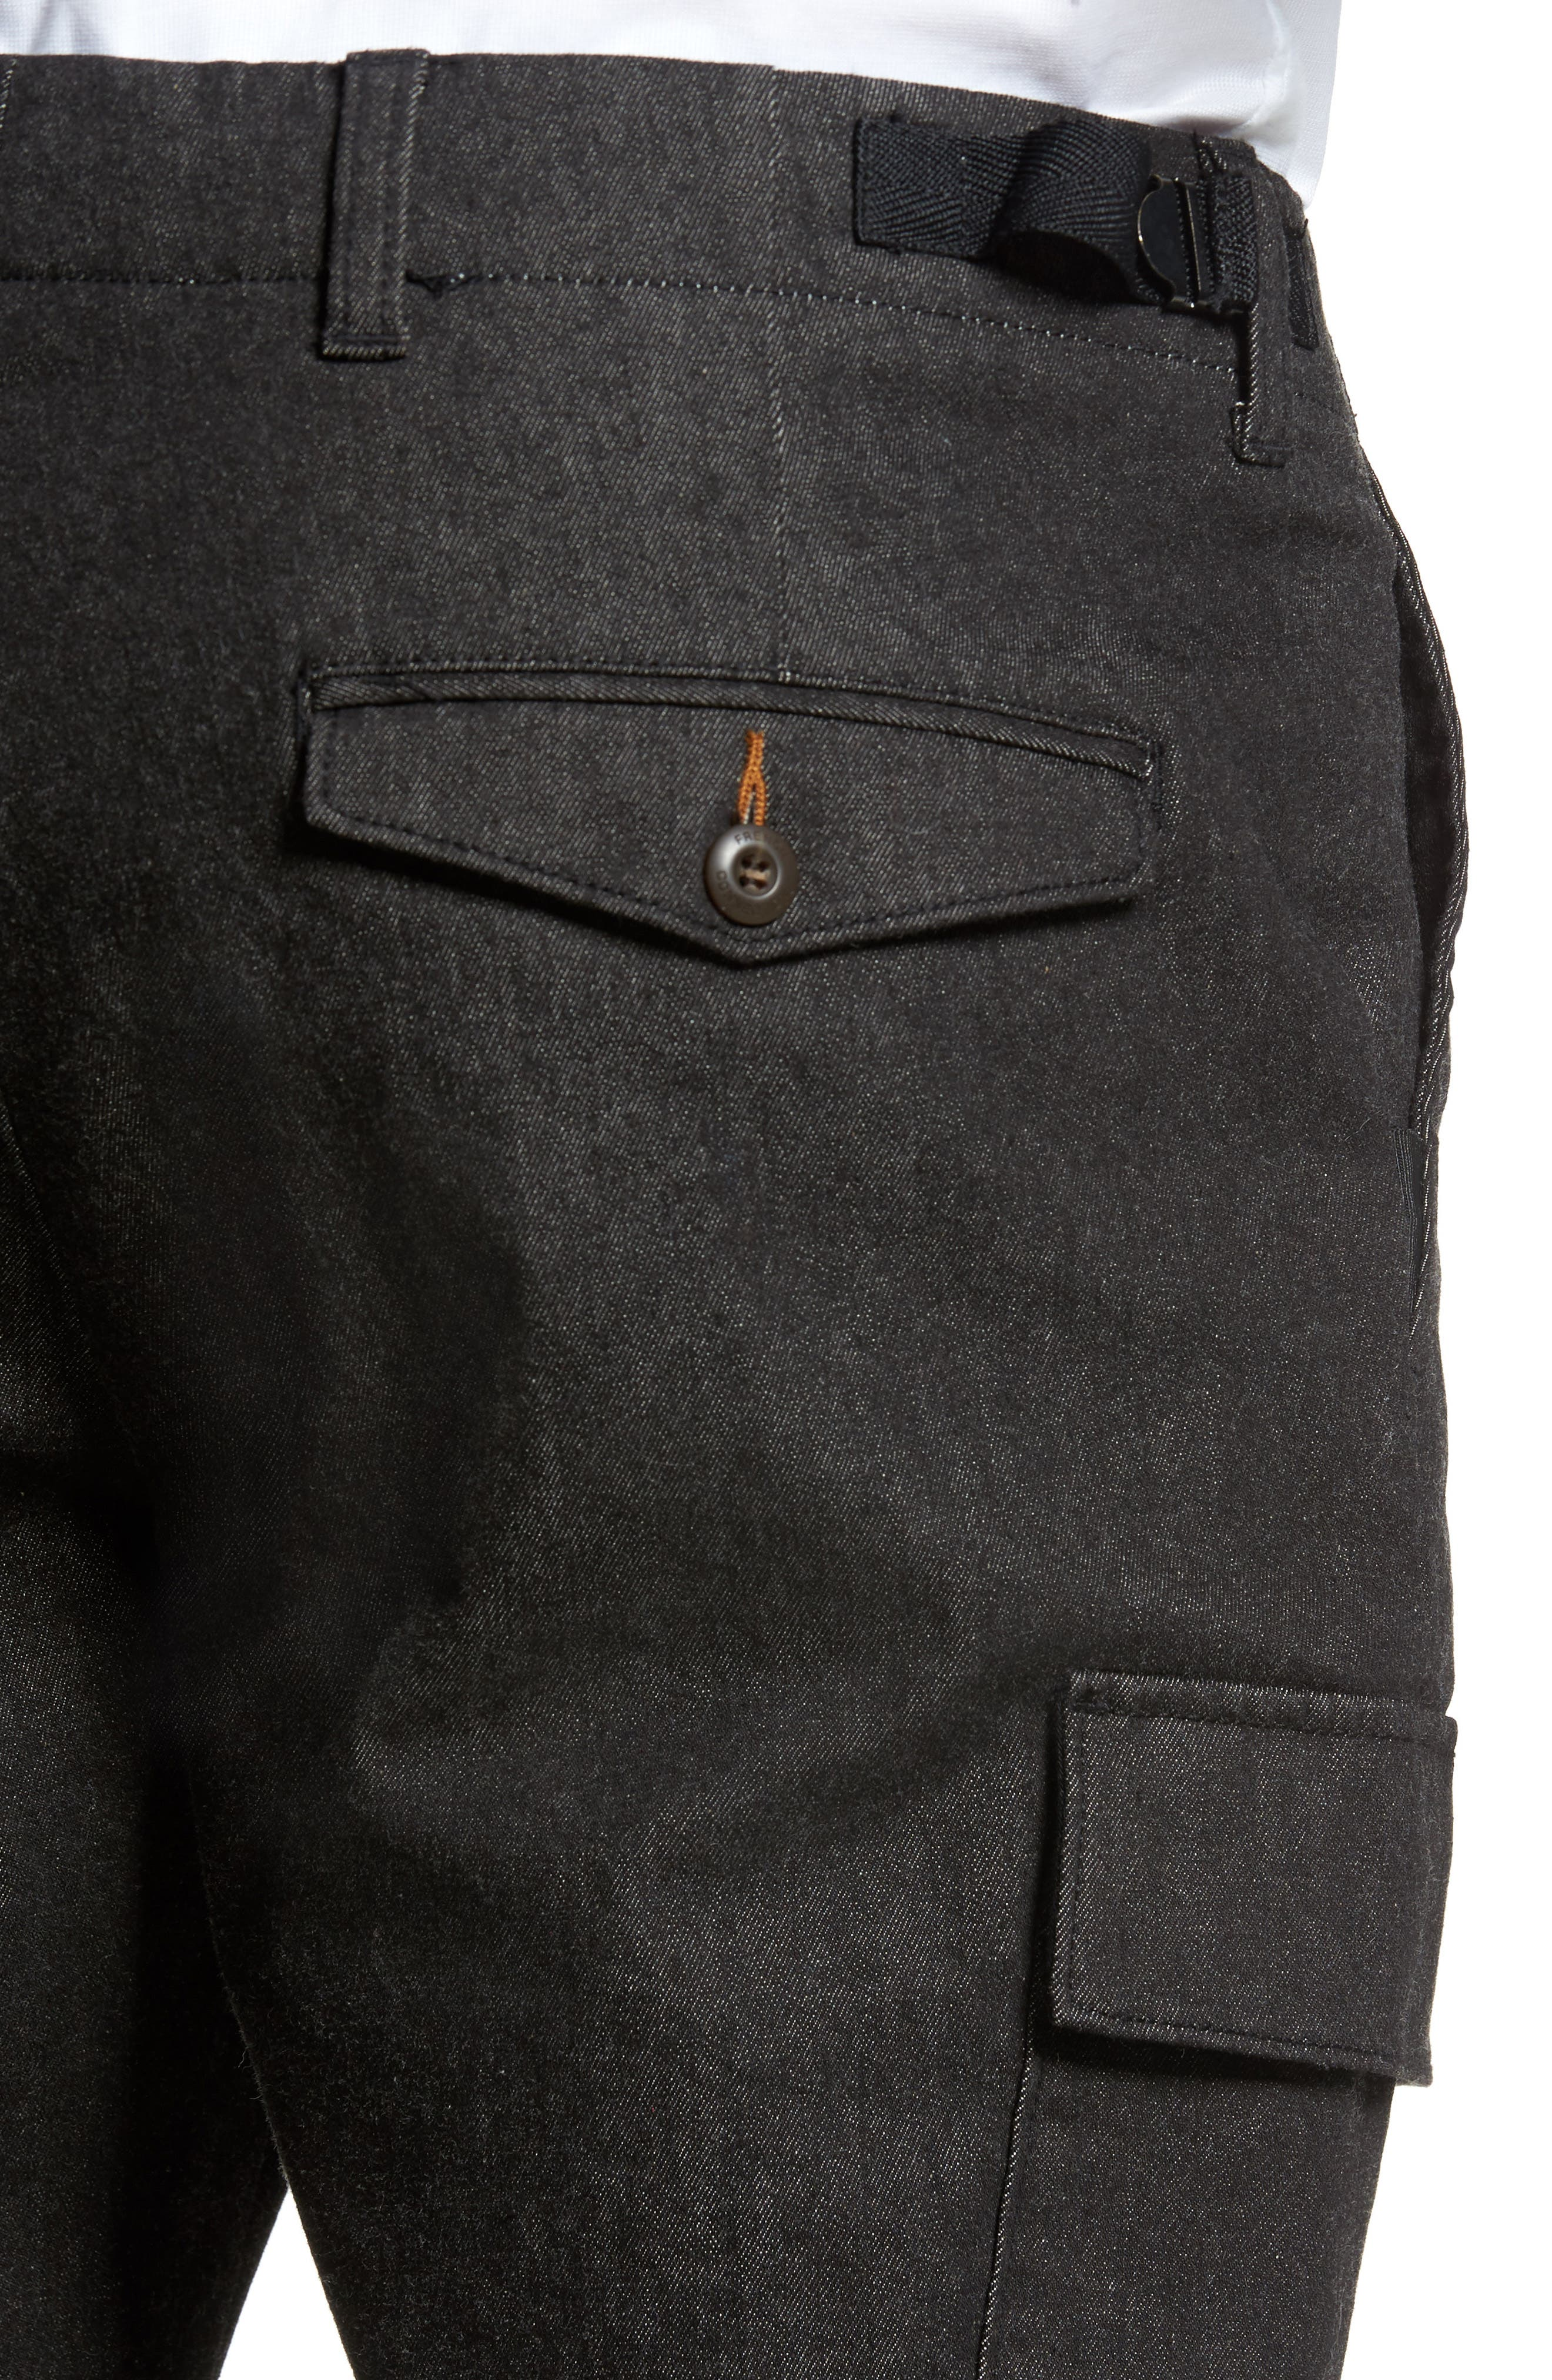 Brushed Stretch Twill Pants,                             Alternate thumbnail 4, color,                             Charcoal Mel